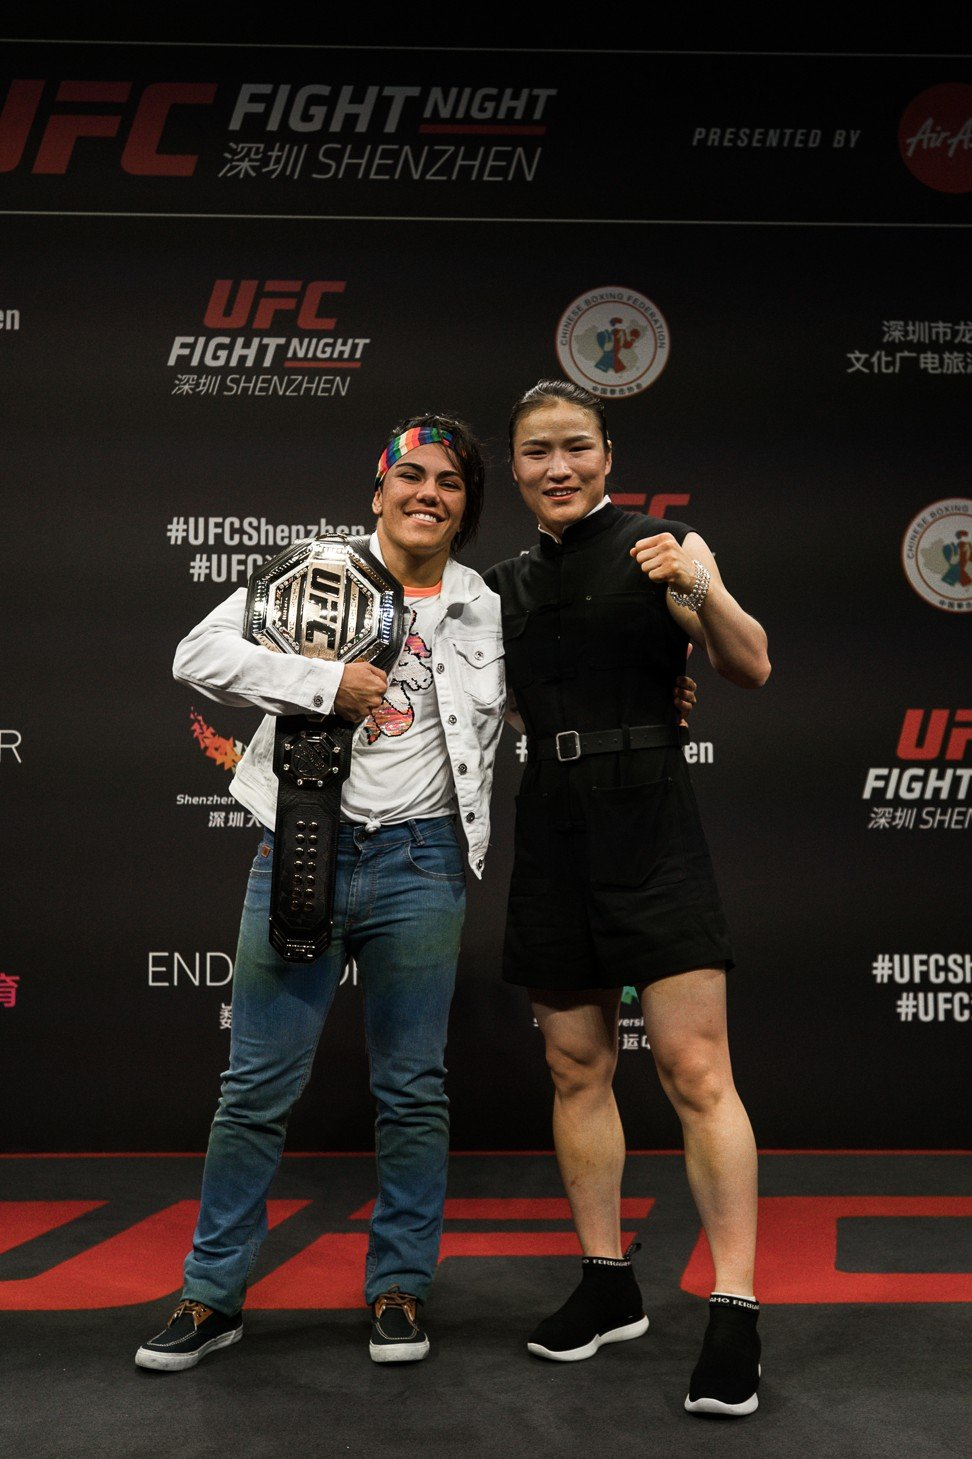 How Bruce Lee fan Zhang Weili found inspiration in her martial arts hero to overcome 'glorious failure' and become UFC champion